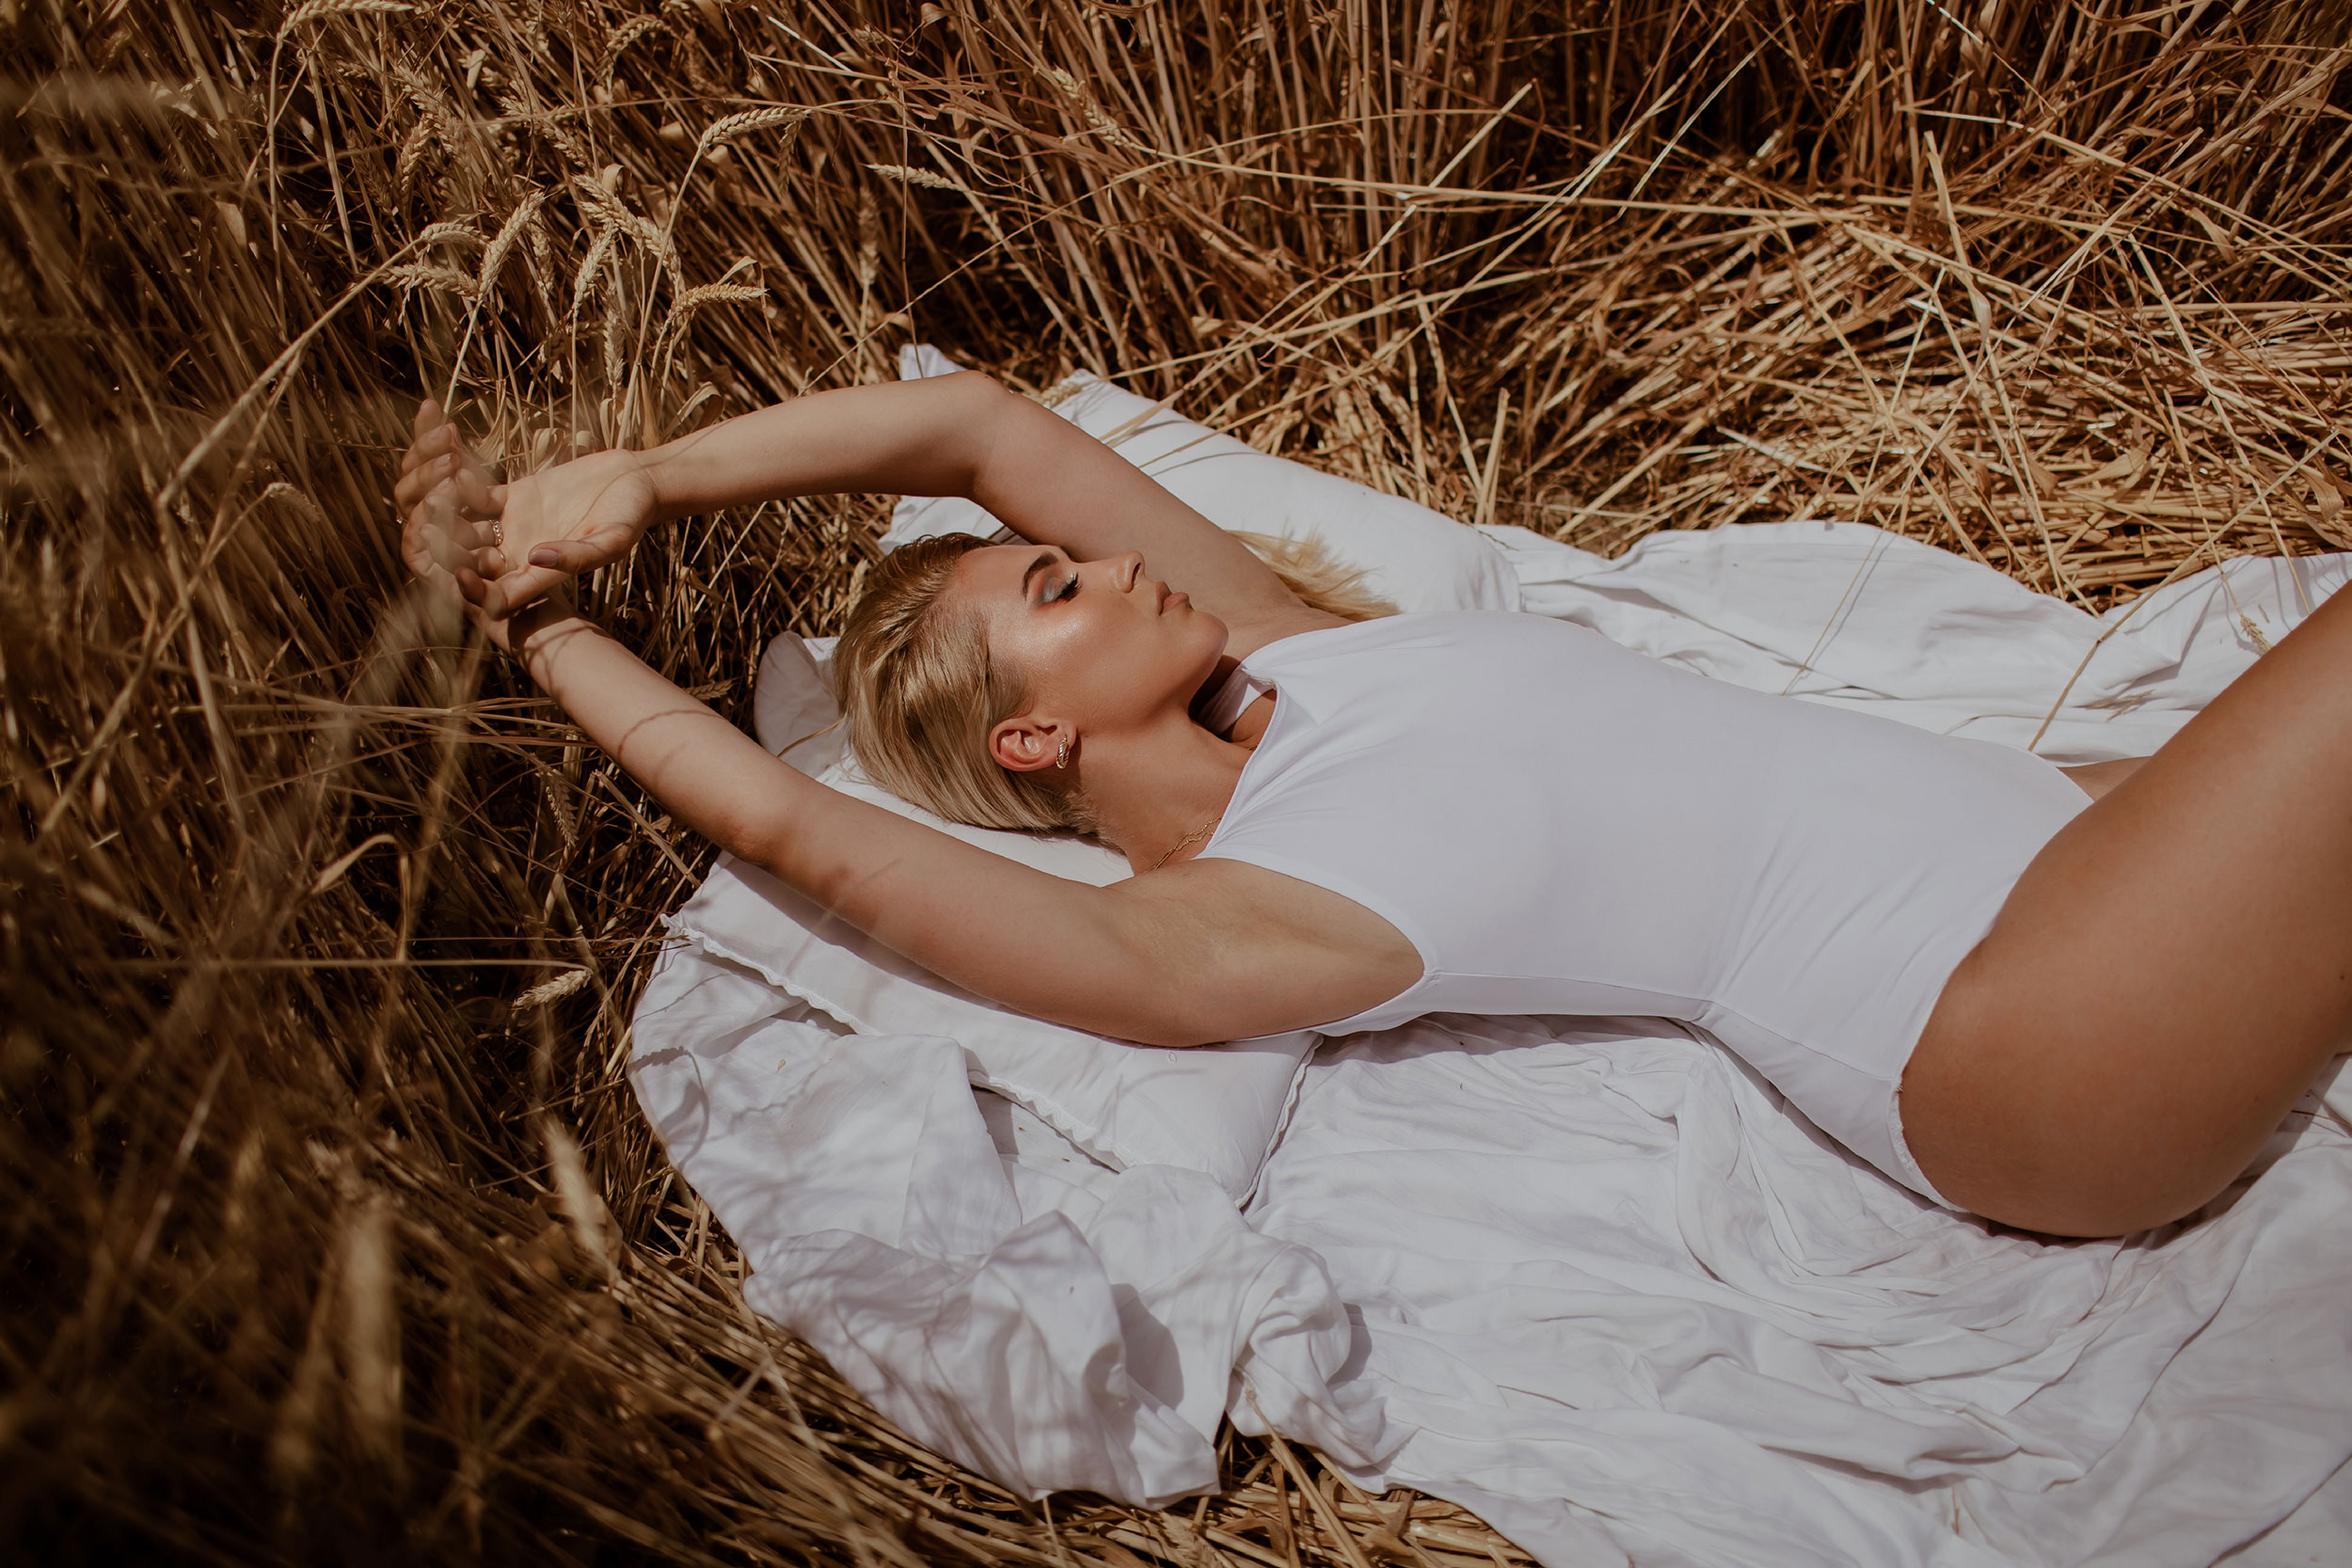 Girl laying in the middle of a Wheatfield